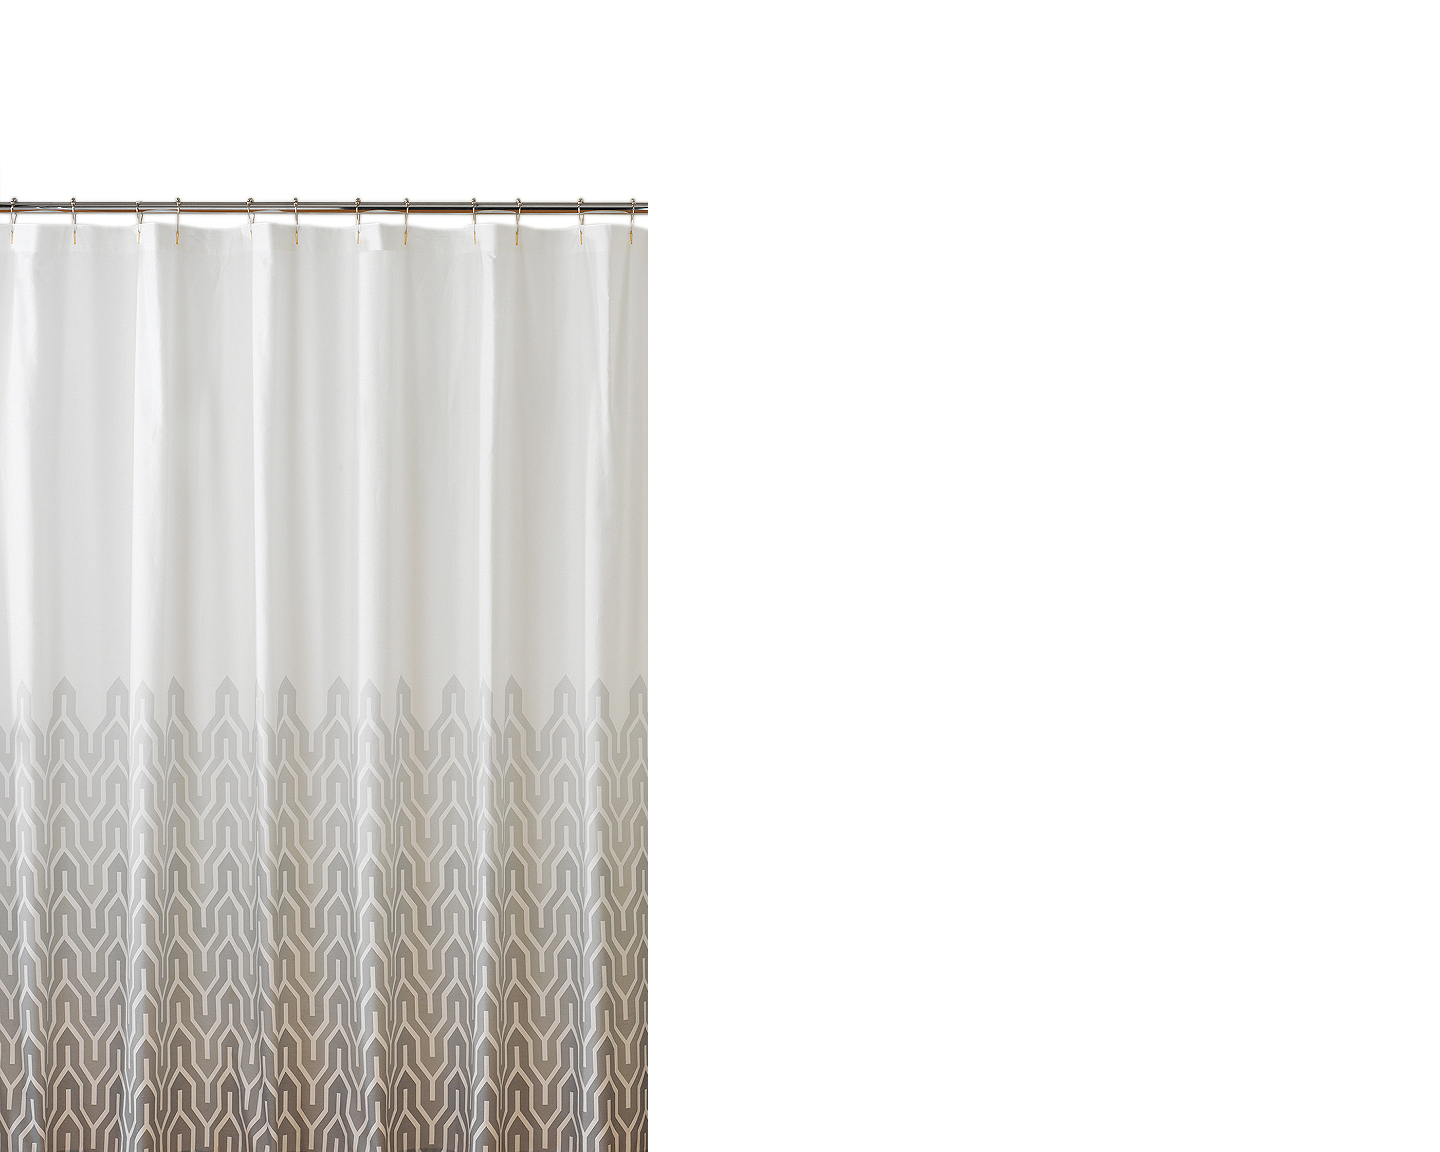 Plimpton Flame Shower Curtain